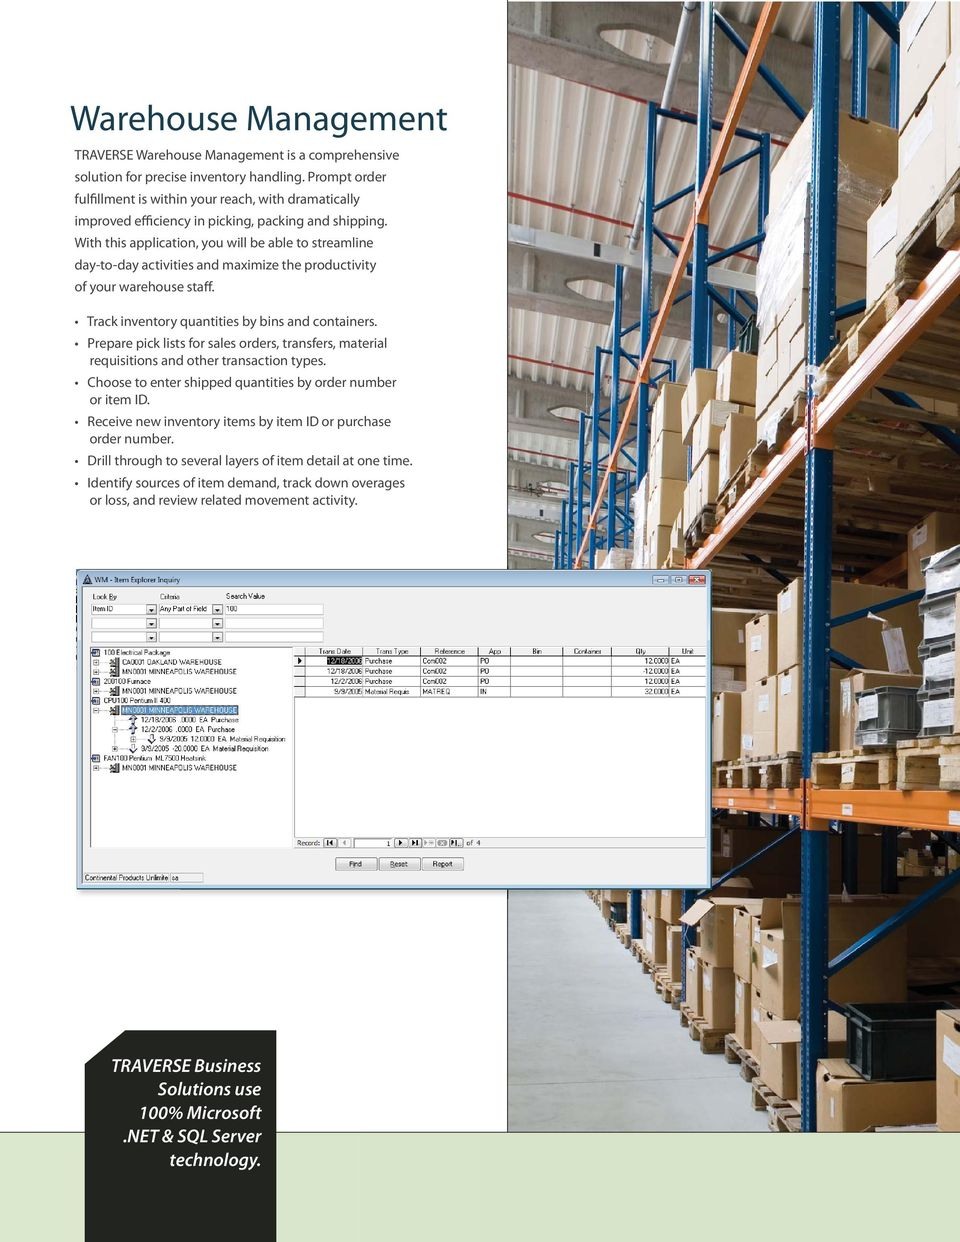 With this application, you will be able to streamline day-to-day activities and maximize the productivity of your warehouse staff. Track inventory quantities by bins and containers.